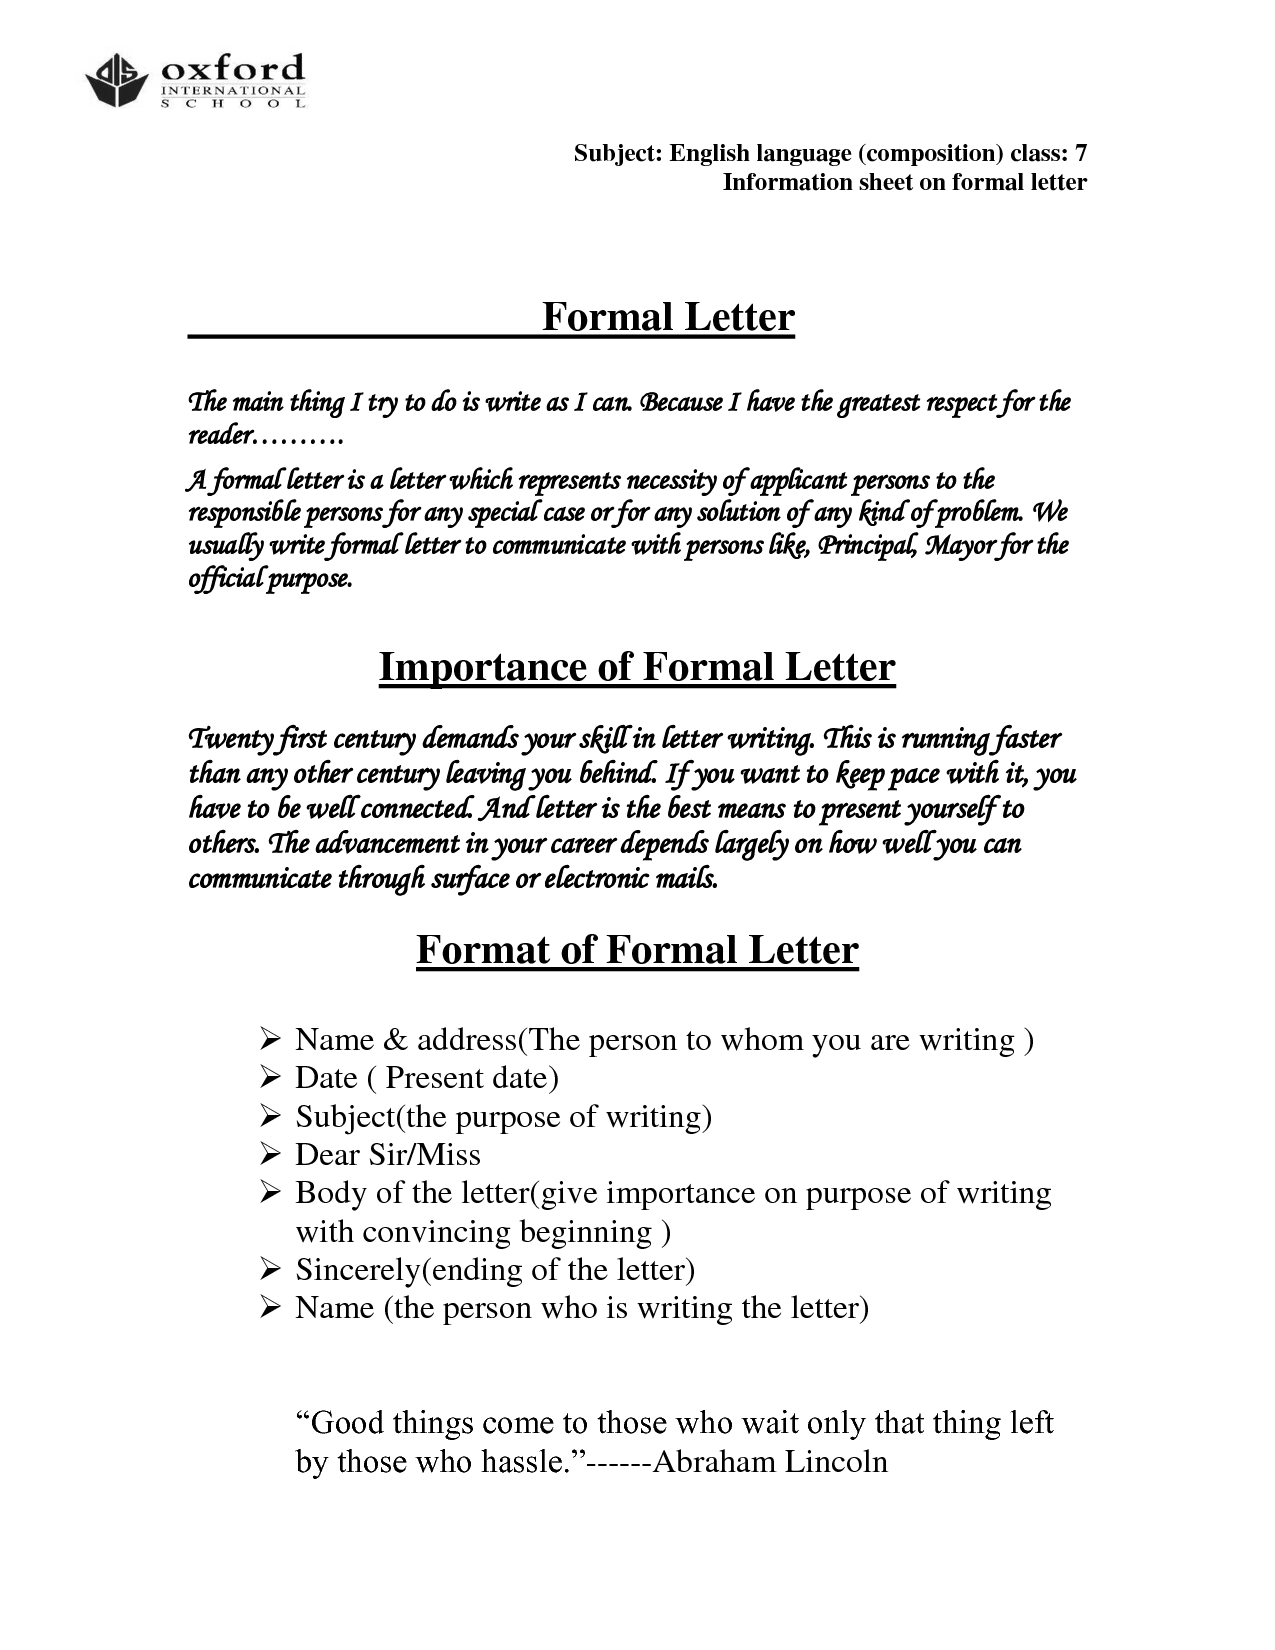 Official Letter Format TemplateOfficial Letter Business Letter – Sample Proper Letter Format